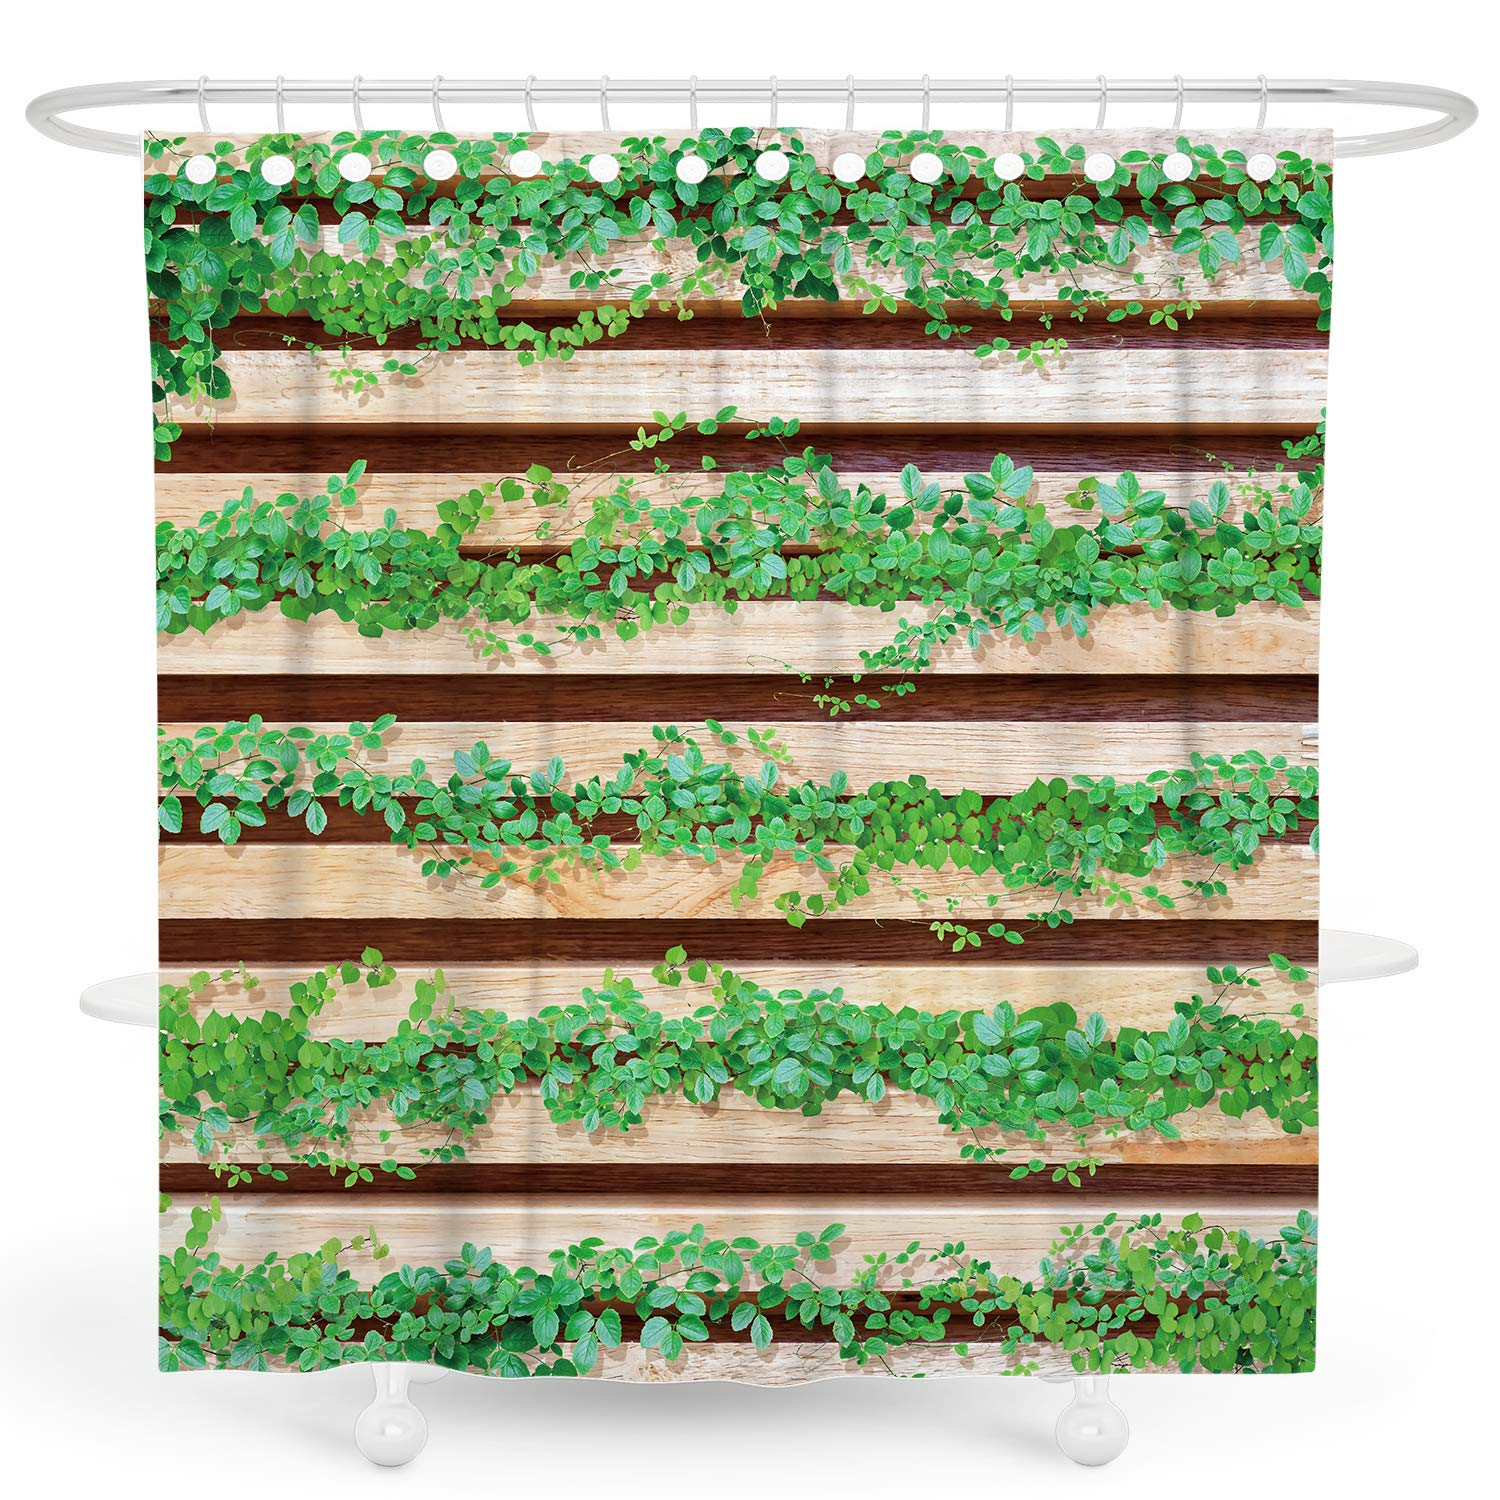 Desihom Green Plant Shower Curtain Rustic Wooden Shower Curtain Botanical Leaf Shower Curtain Farmhouse Shower Curtain Primitive Country Shower Curtain Summer Polyester Waterproof Shower Curtain 72x72